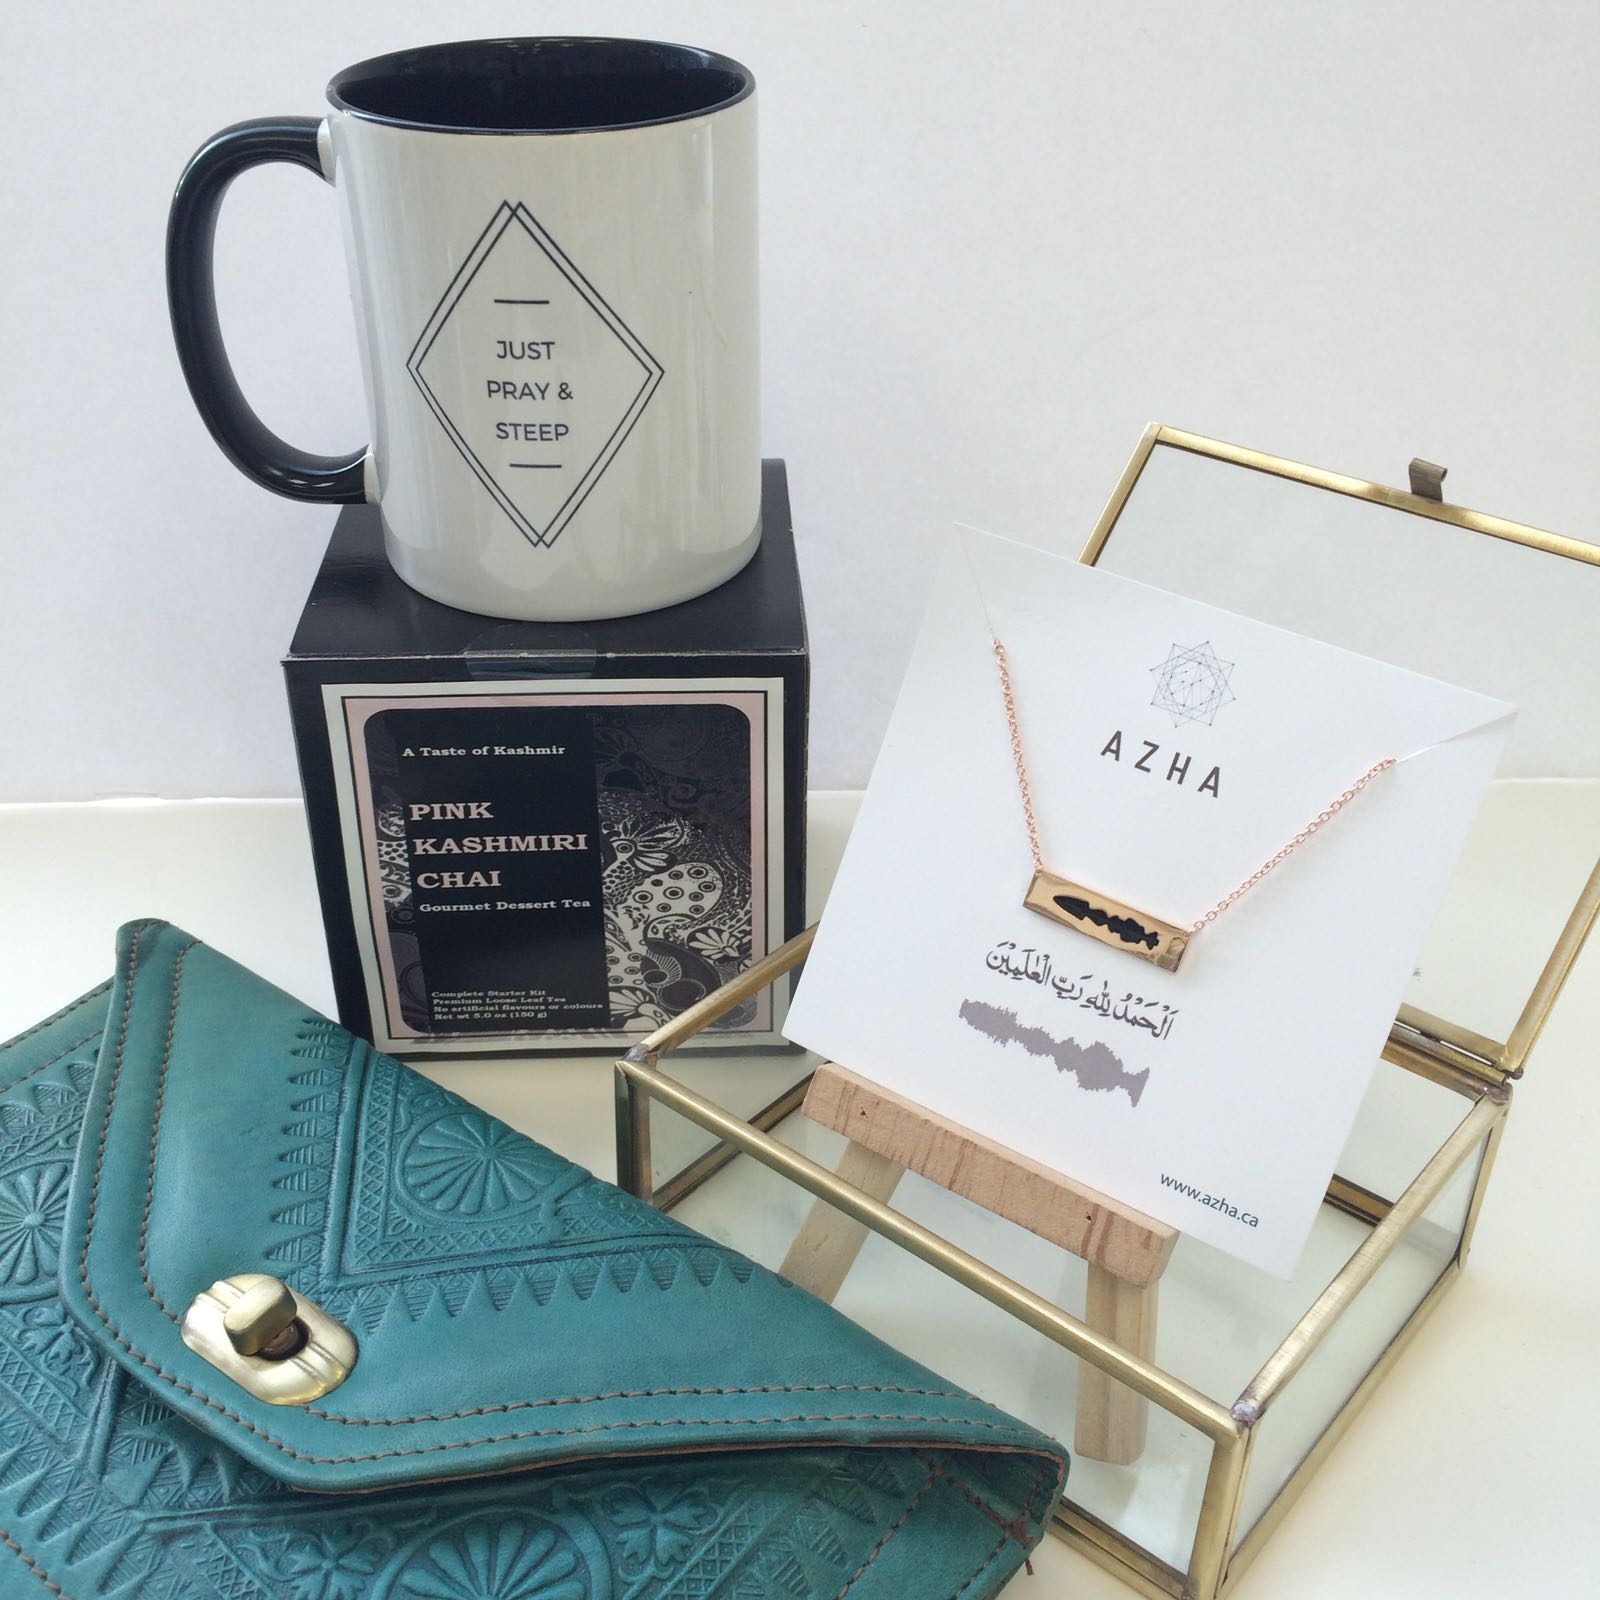 "Aneesa's gift for her mom, Safia. Just Pray & Steep Mug (Eastern Toybox, $15), Kashmiri Chai kit (Zaza & Umbairo $13.50), Leather Moroccan Clutch (Al- Kahf $45), Rose Gold Dipped ""Alhamdulillah"" Necklace (Azha $60)."